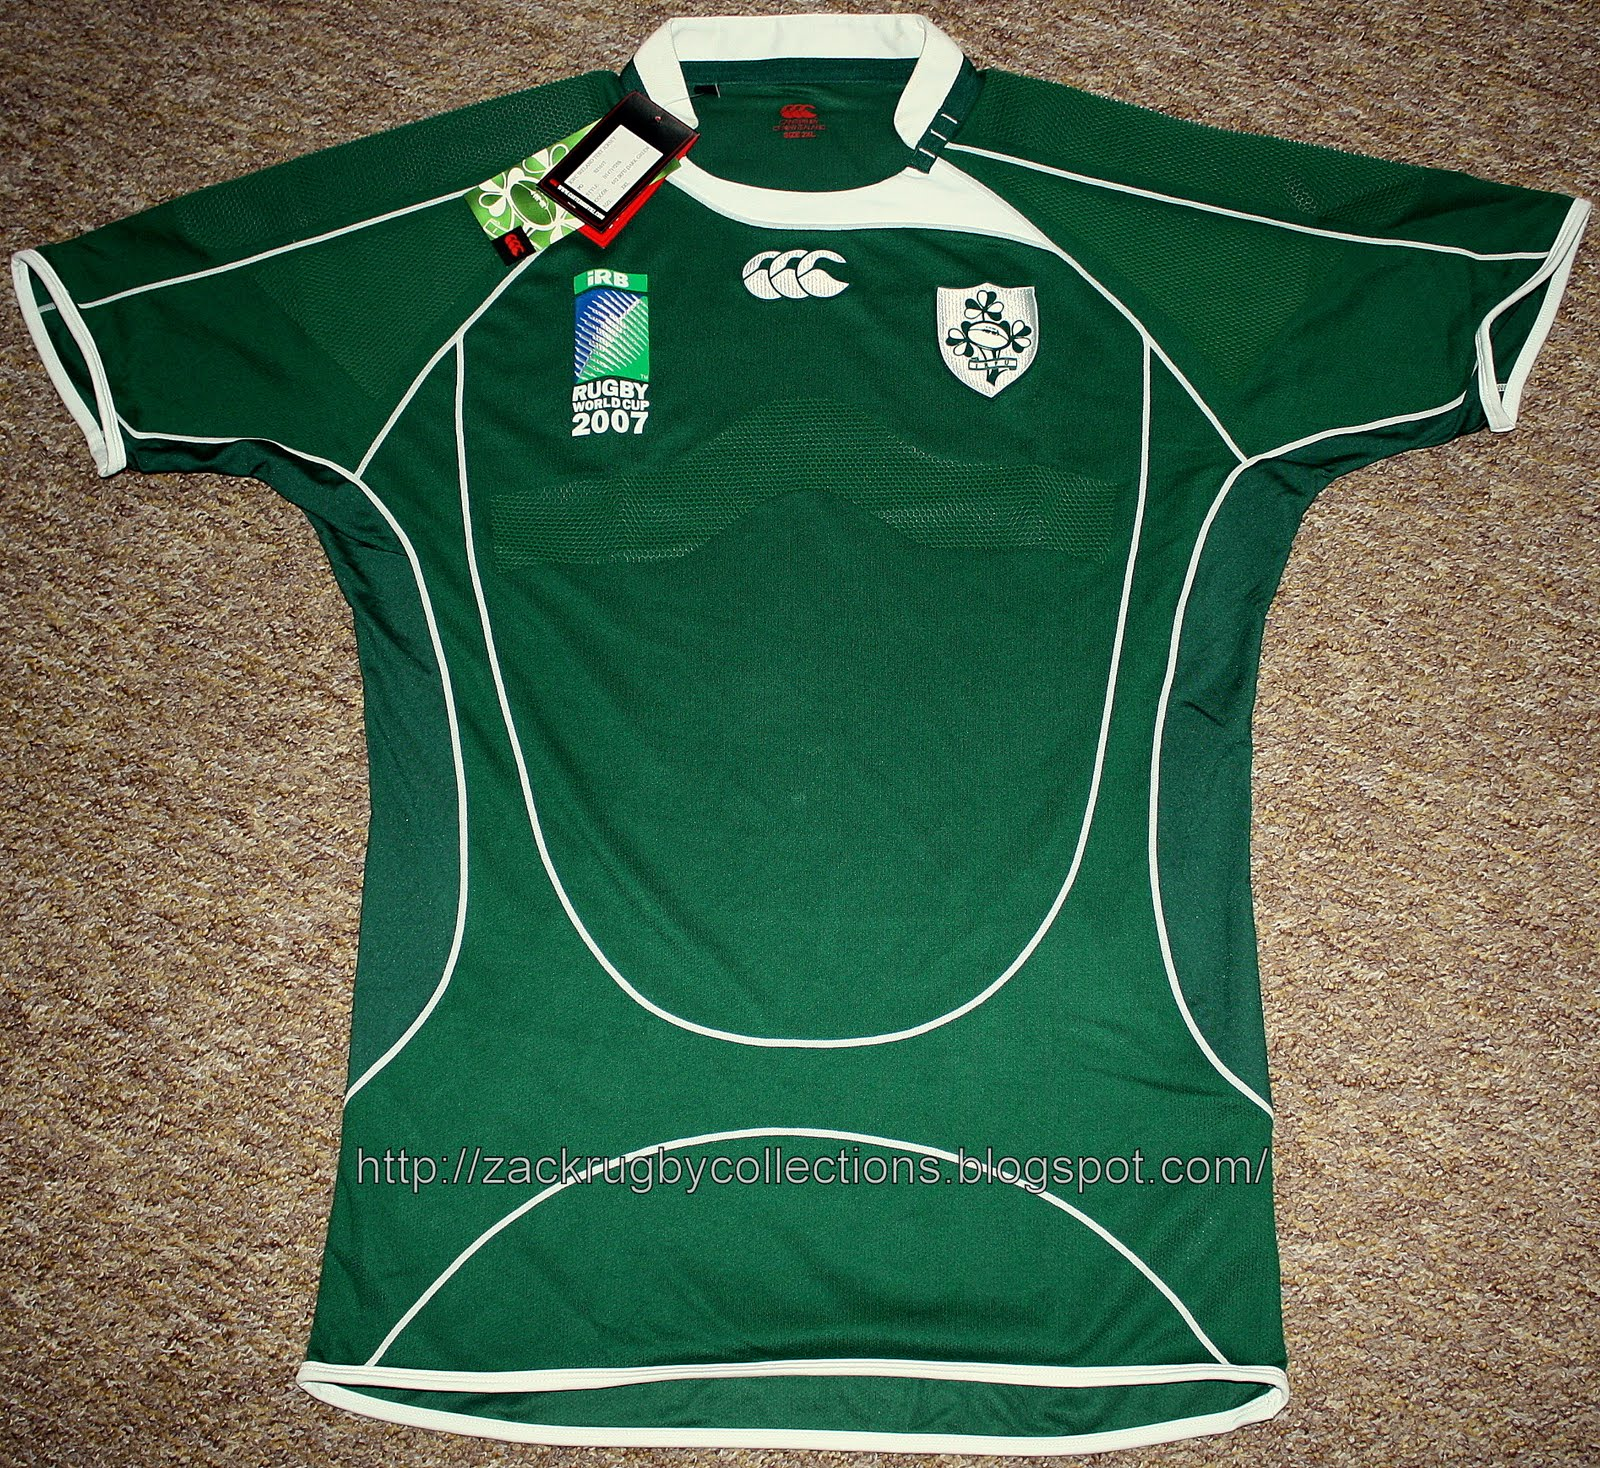 bb27f8c5668 ZackRugby Collections®: Ireland (IRFU) Rugby World Cup 2007 Test ...